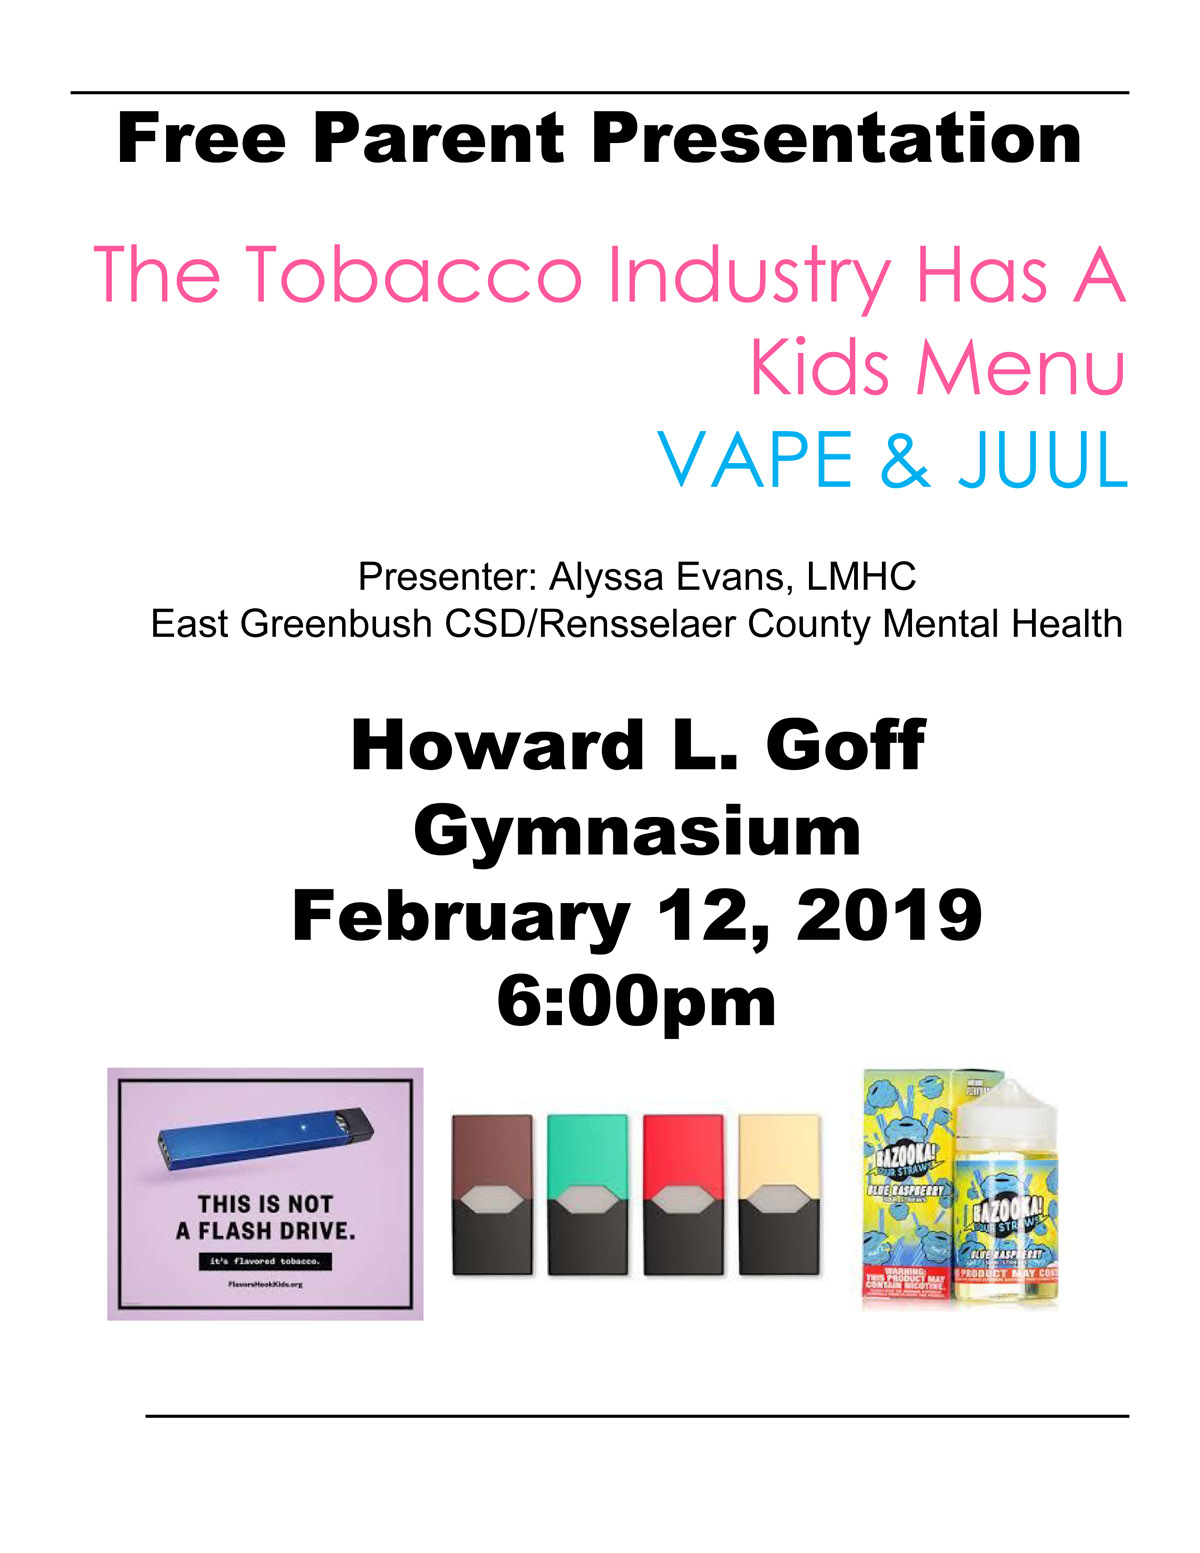 Goff Vape and Juul Parent Presentation flyer